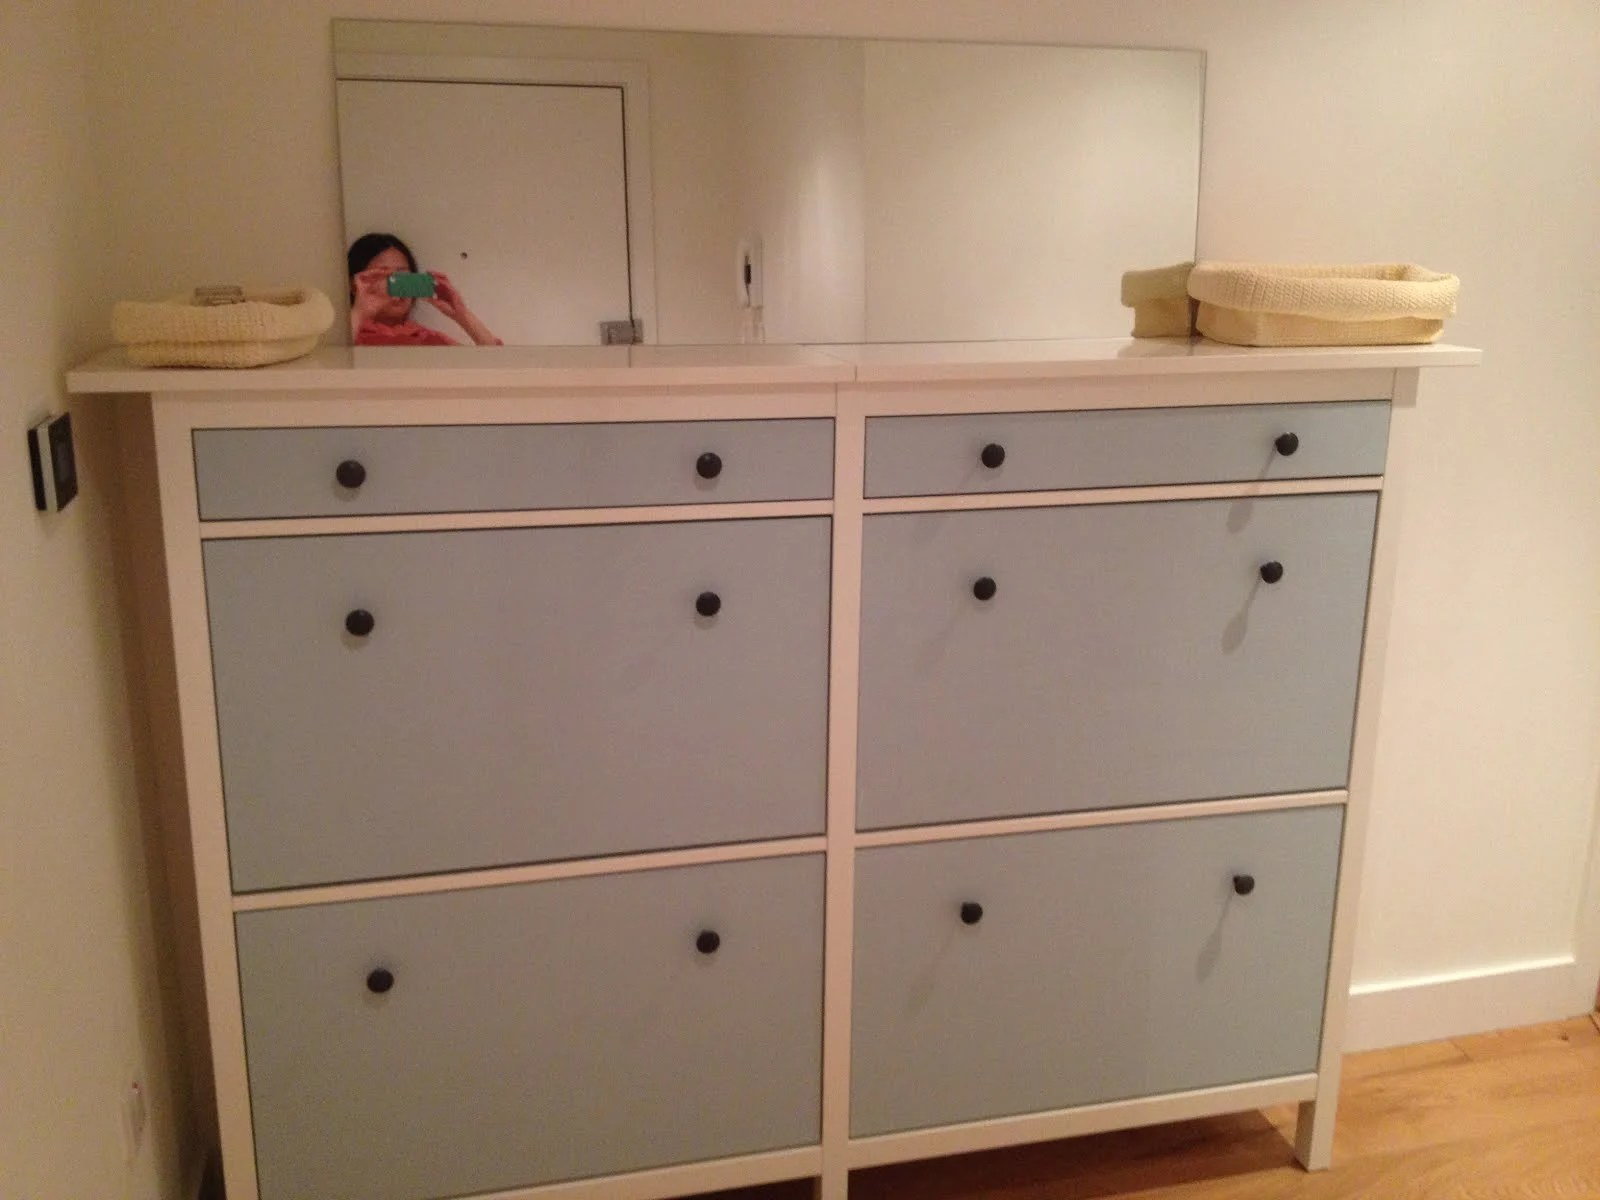 wedded hemnes shoe cabinets twined and painted ikea hackers. Black Bedroom Furniture Sets. Home Design Ideas